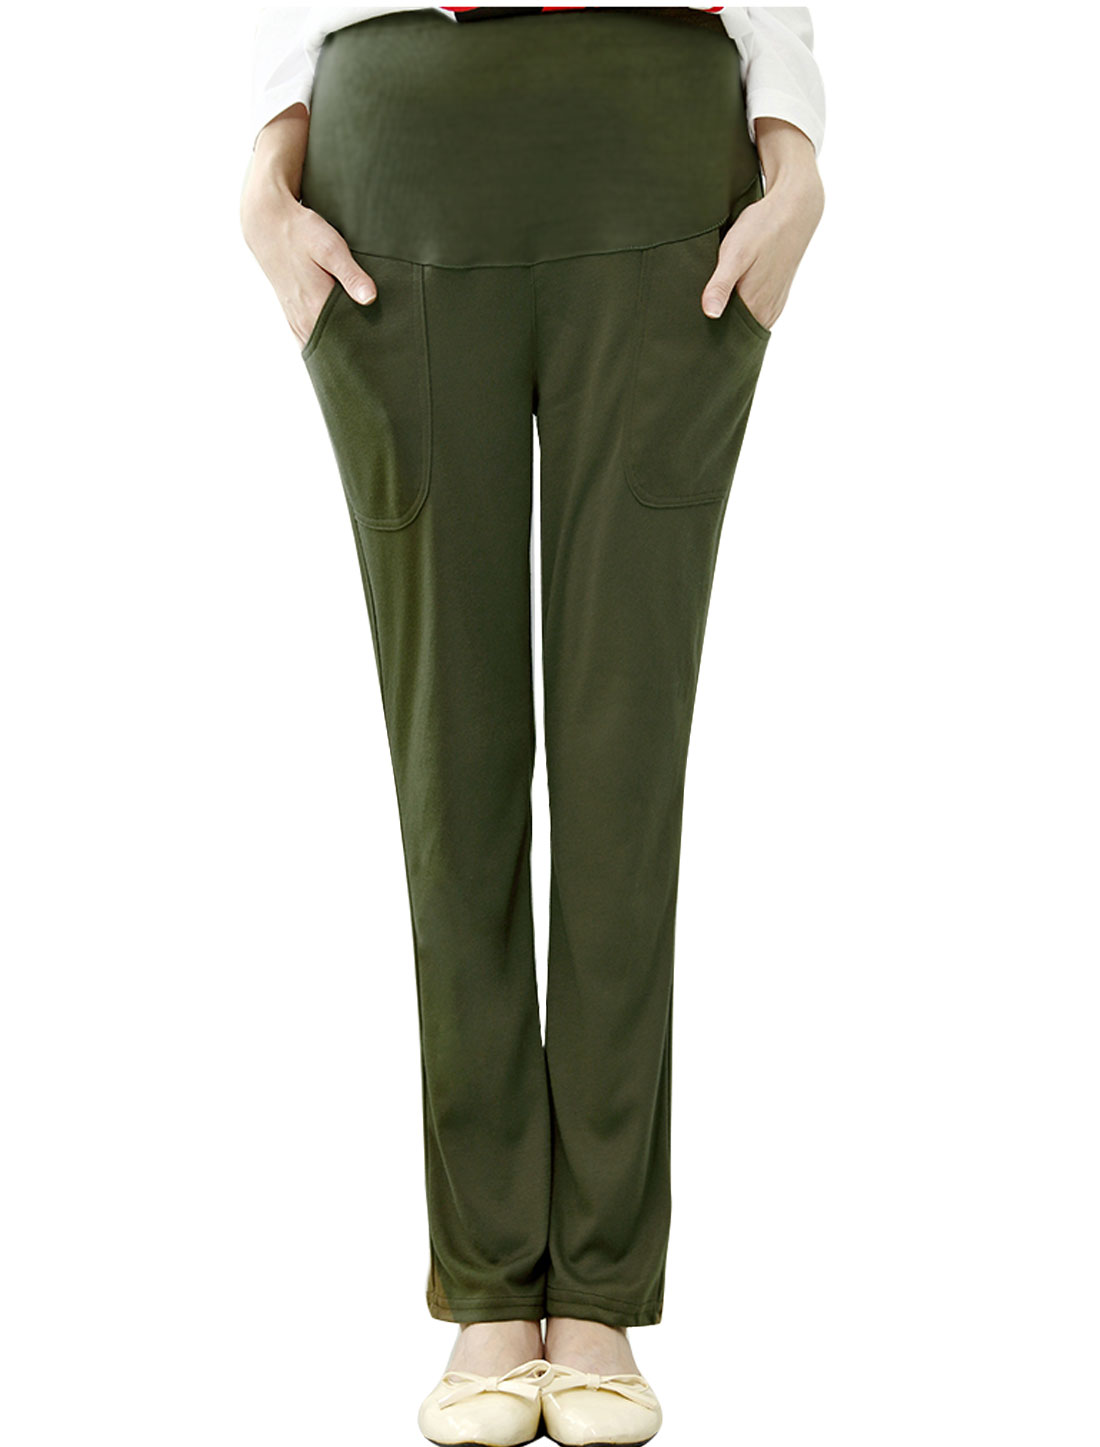 Maternity Soft Drawstring Button Adjustable Waist Fleece Lined Casual Pants Army Green